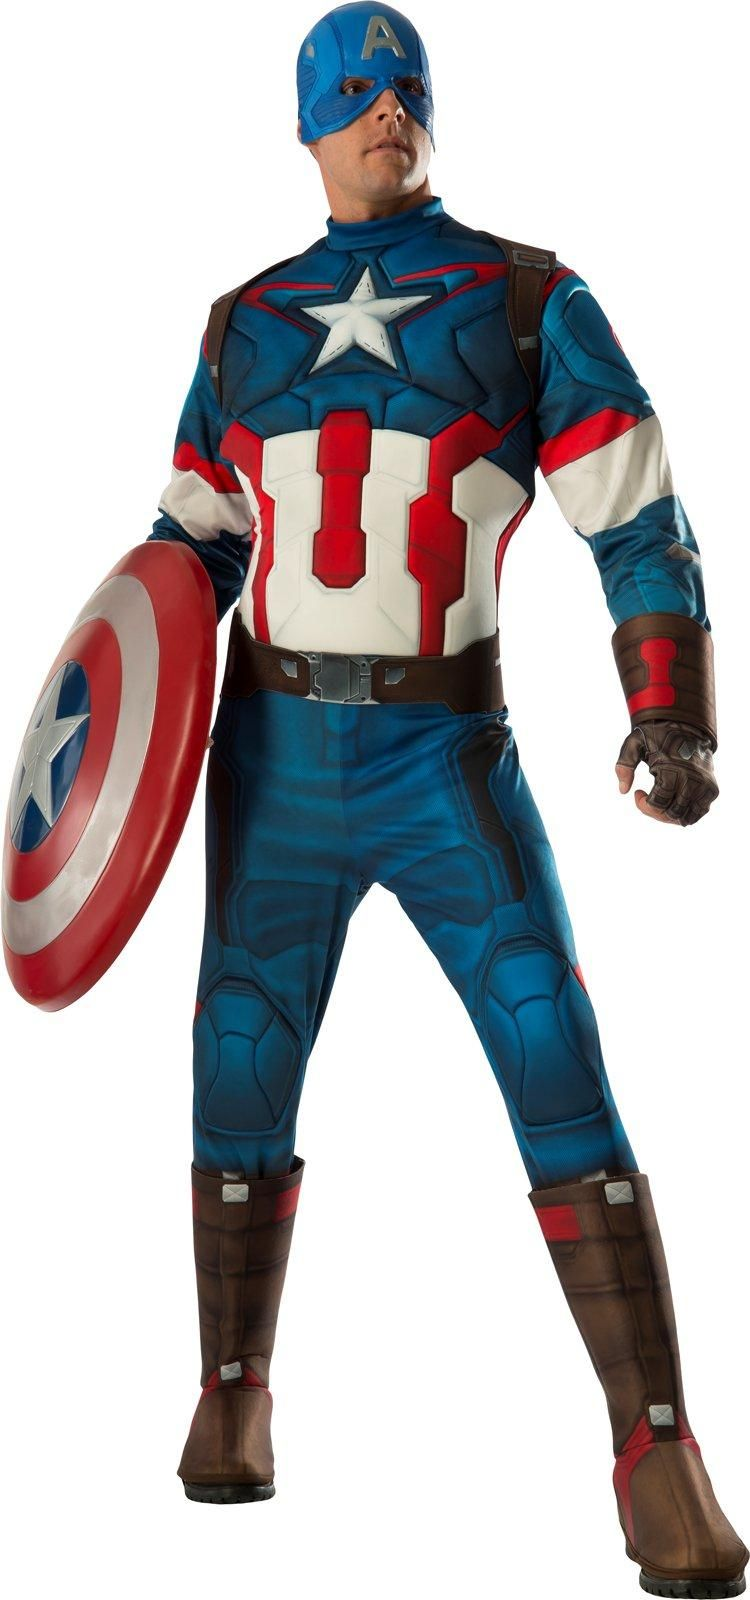 ea31238f369 Become the ultimate Captain America in this Avengers 2 - Age of Ultron  Deluxe  Captain America Costume For Men from Buycostumes.com!